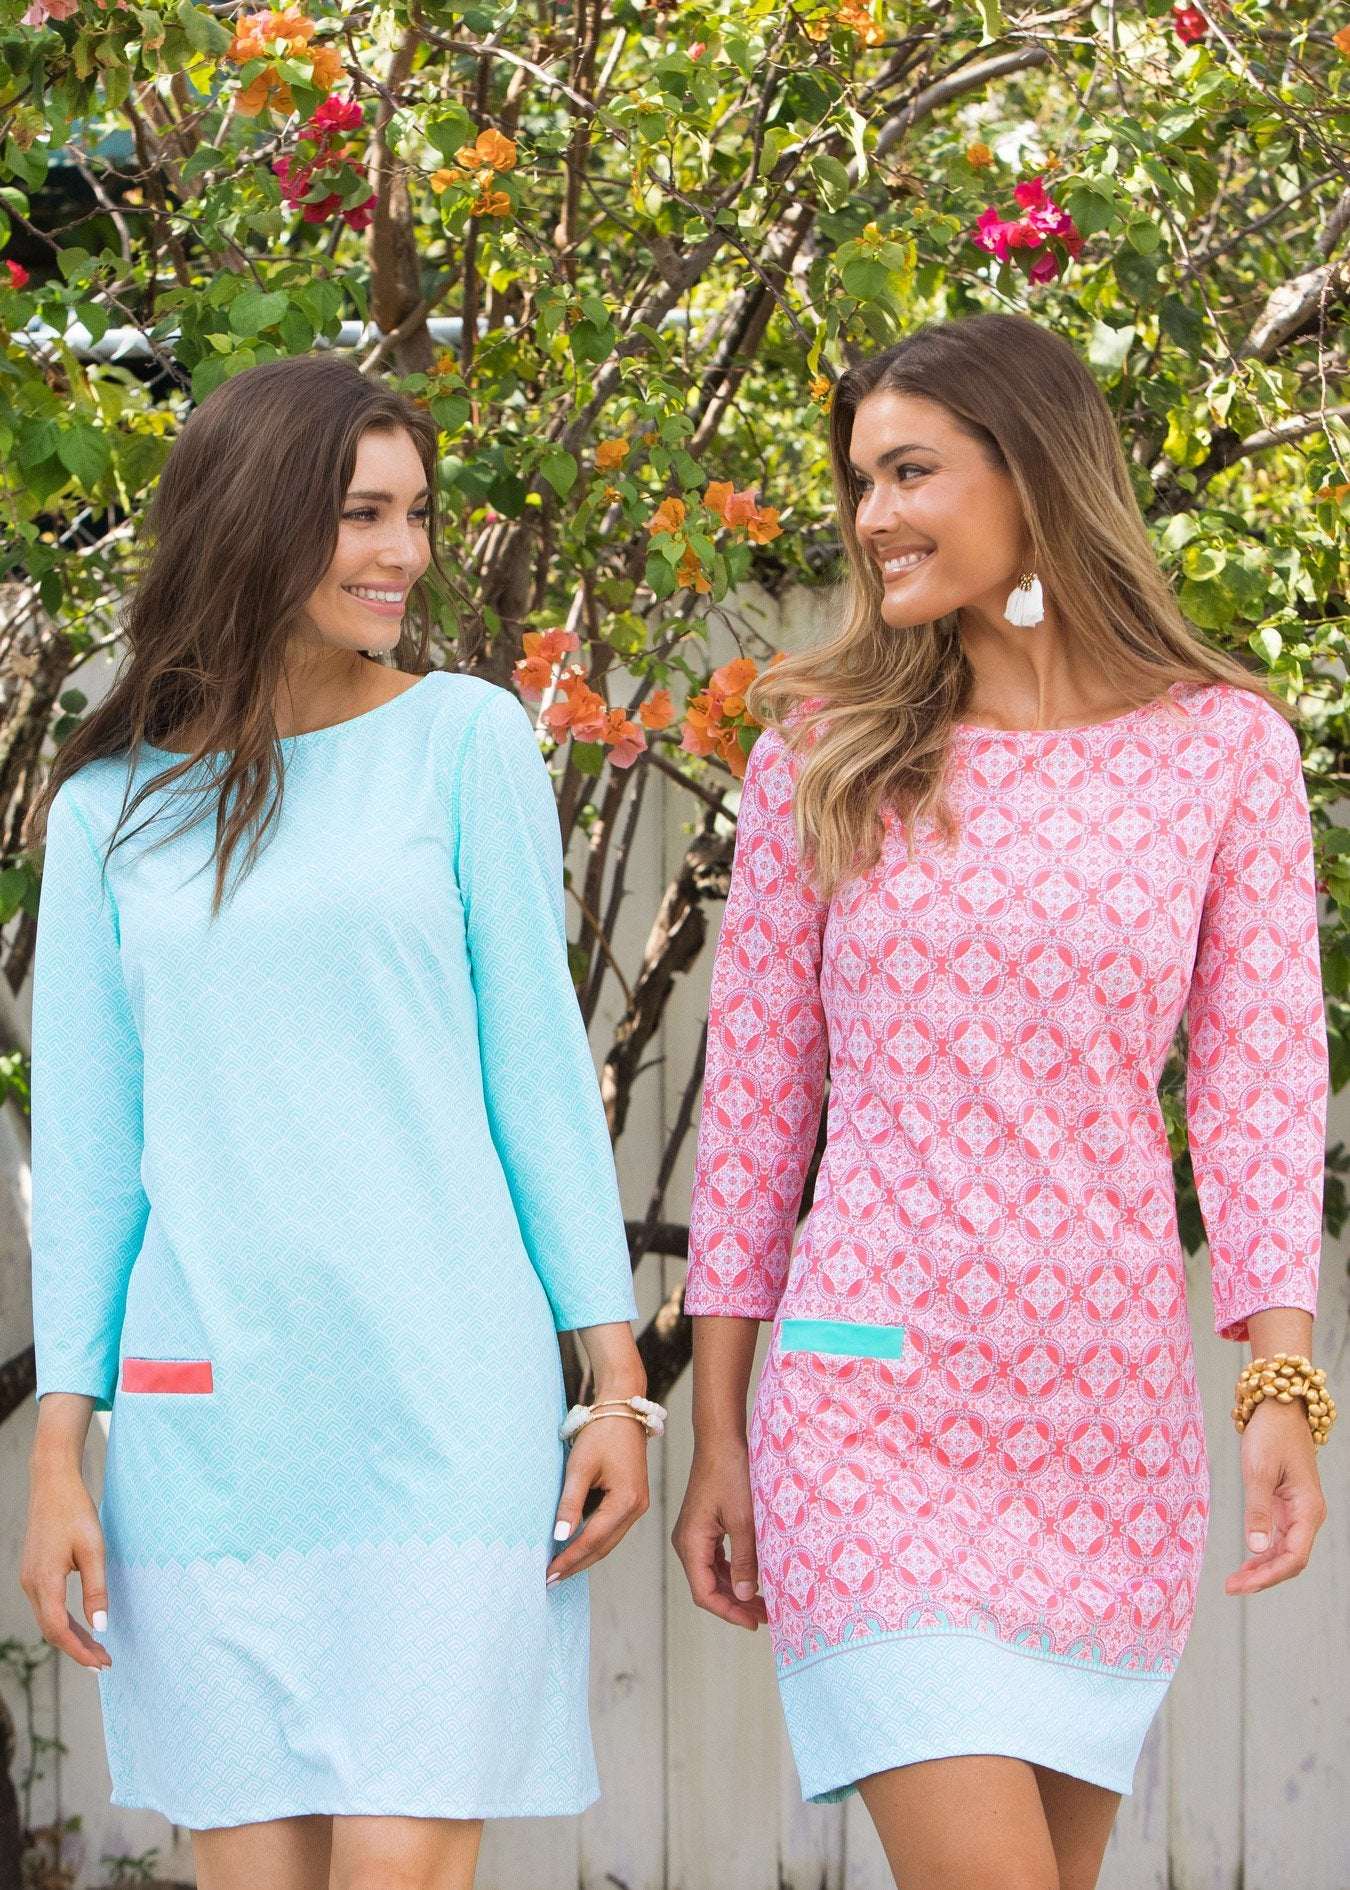 Two women in matching Cabana Life Coral Tides UPF 50+ Cabana Shift Dresses